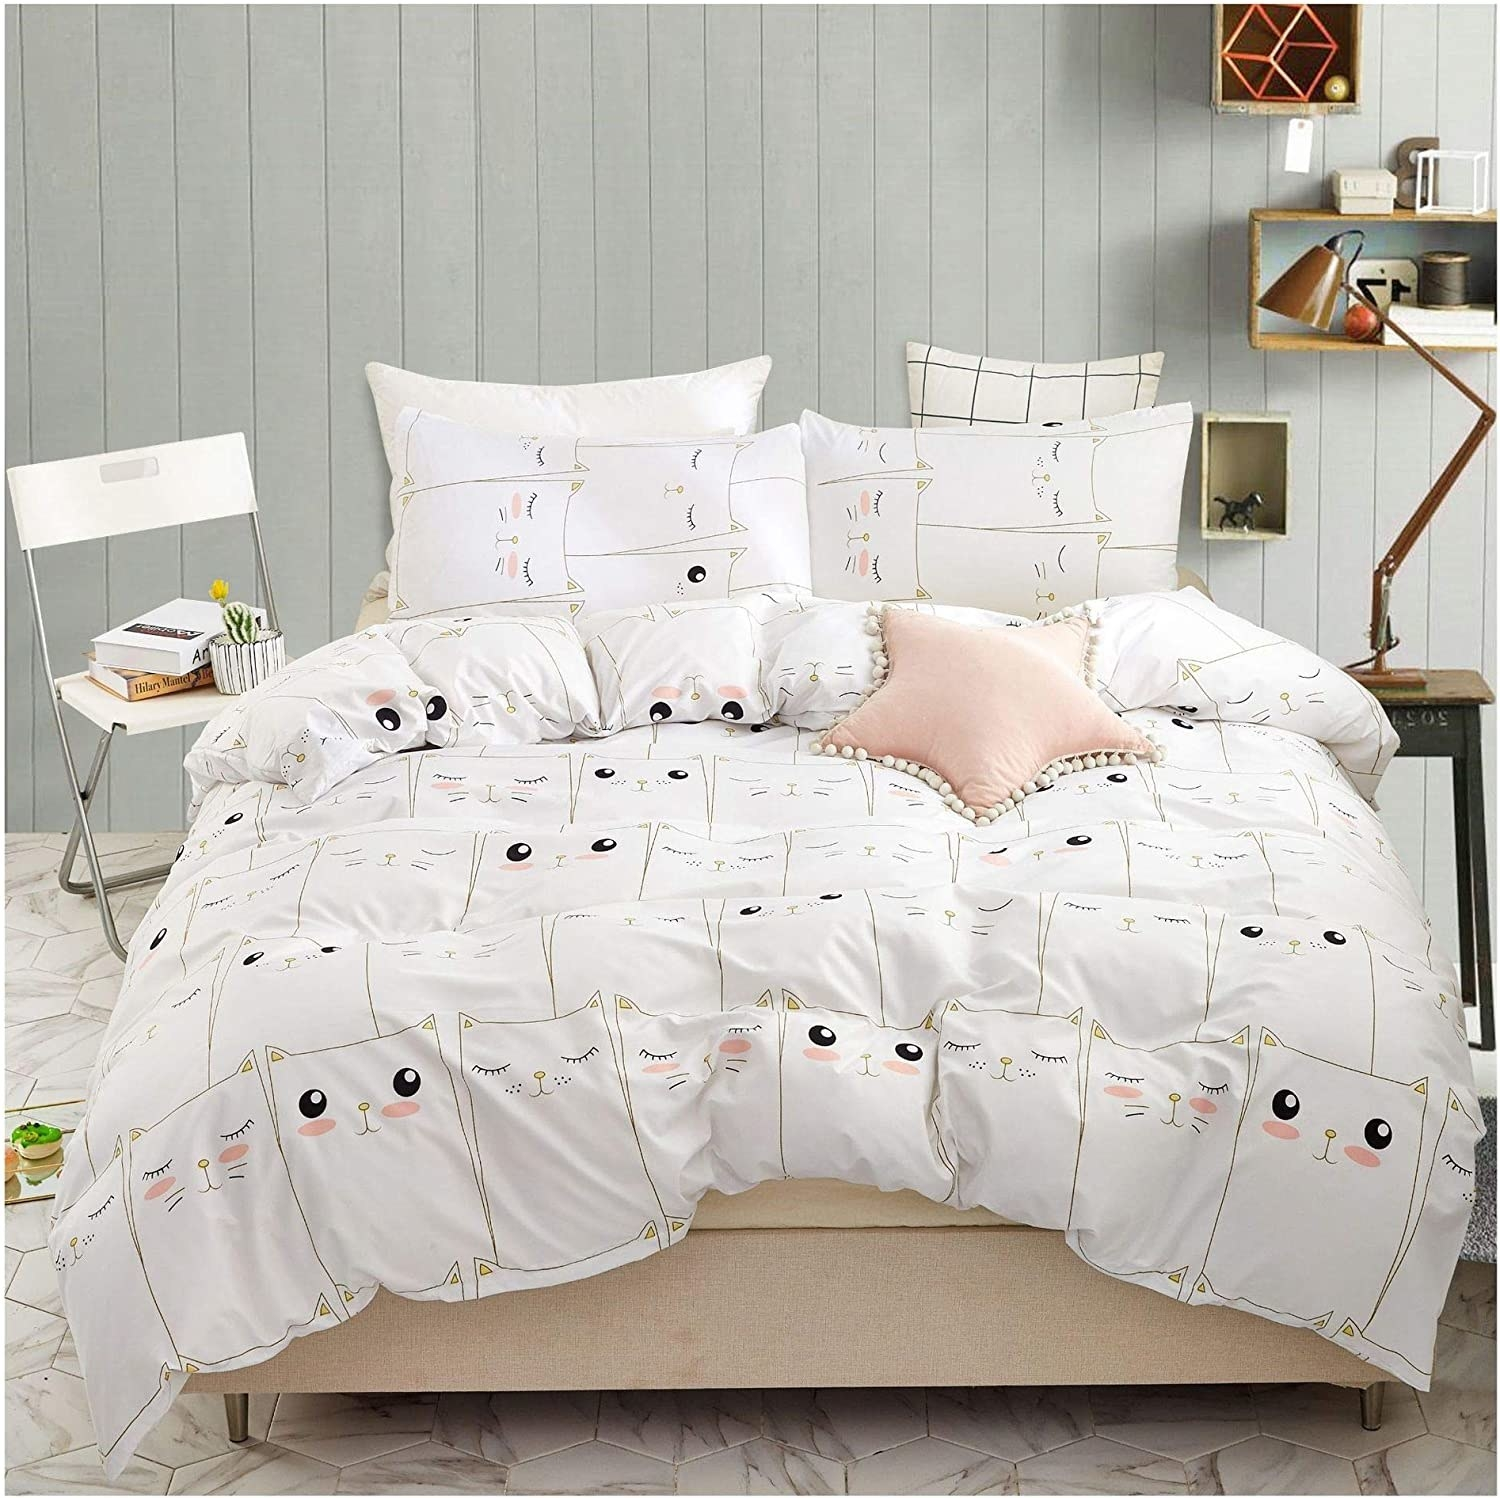 White bedding covered in simple cat faces; some have open eyes, closed eyes, and rosy cheeks